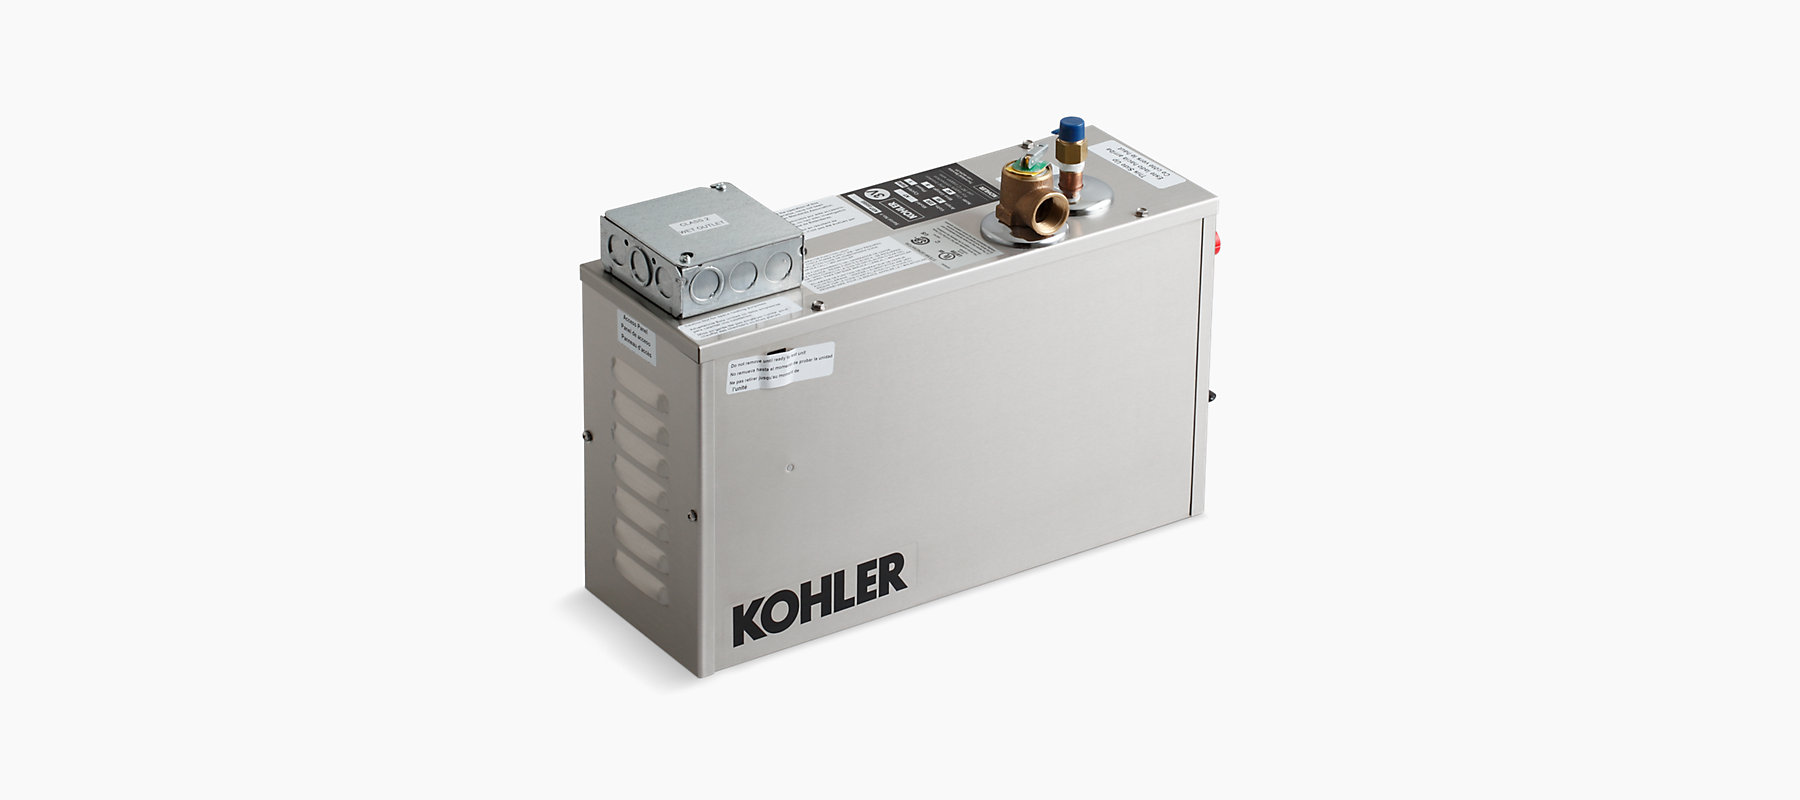 kohler 5e generator wiring diagram wiring diagram kohler wiring diagram manual diagrams for automotive 5e generator